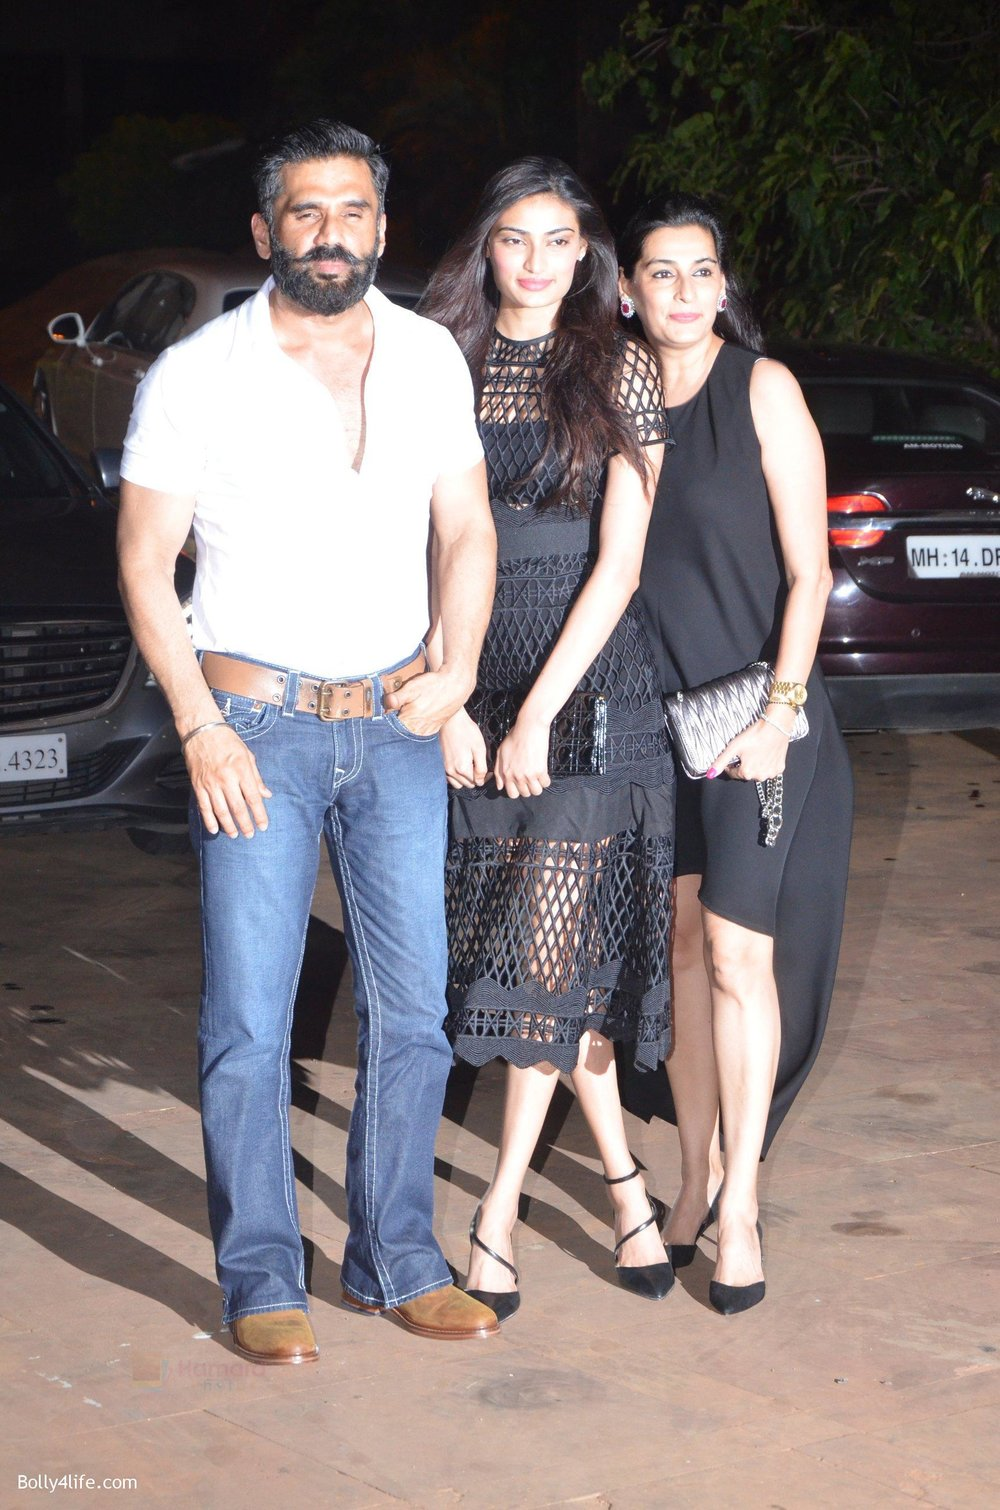 Sunil-Shetty-Mana-Shetty-Athiya-Shetty-at-Reema-jain-bday-party-in-Amadeus-NCPA-on-28th-Sept-2016-895.jpg